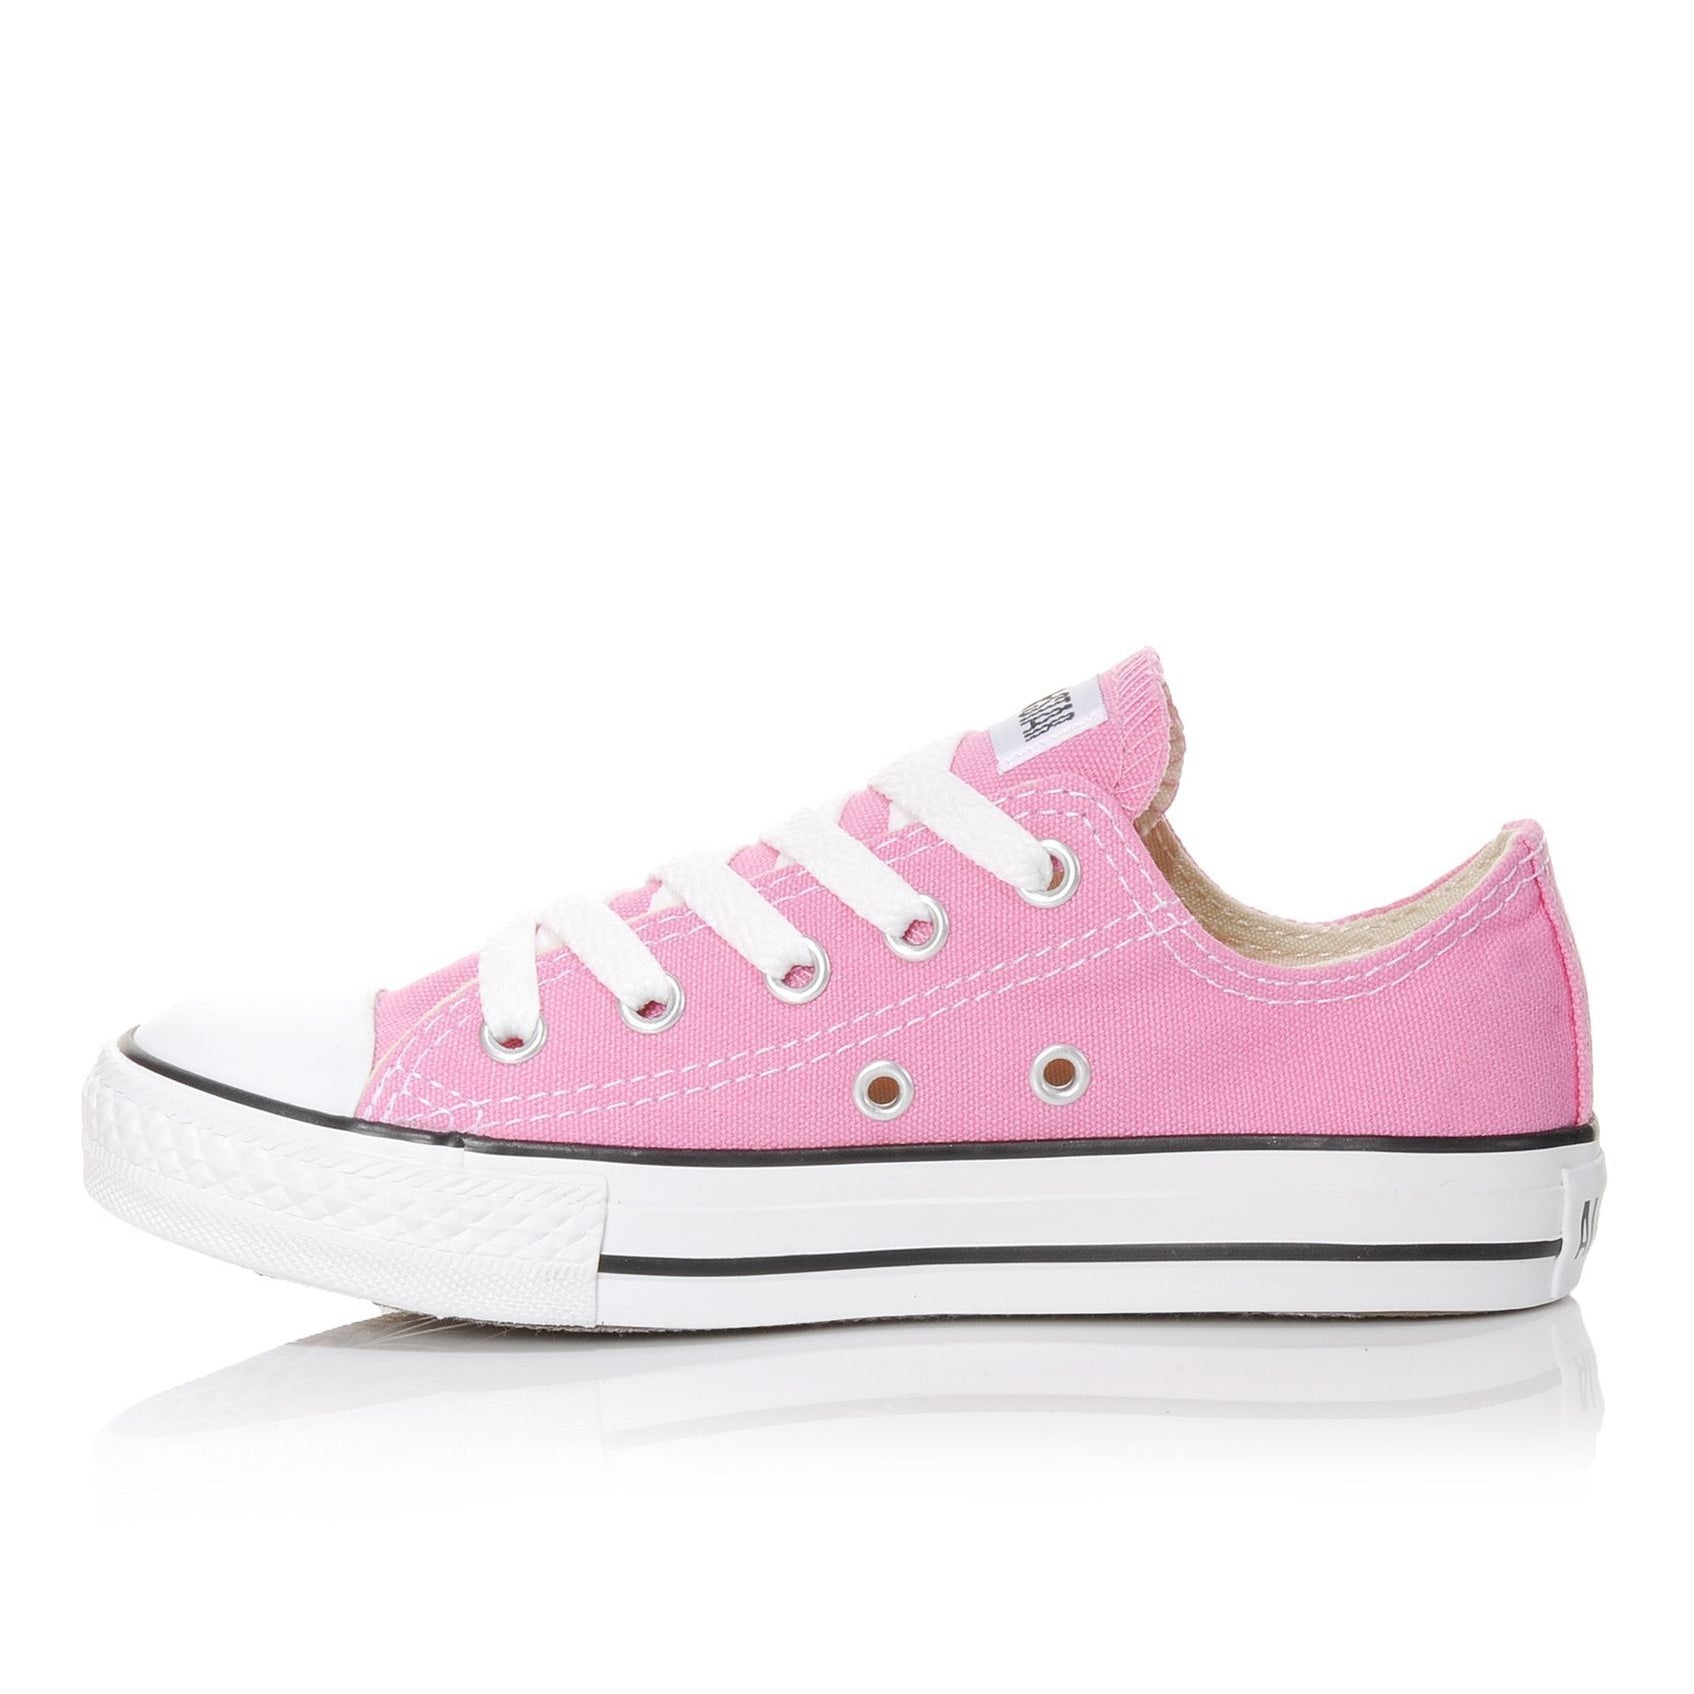 0288d55a53c8 Kid s Converse Chuck Taylor Ox Sneakers – TNT Closeouts